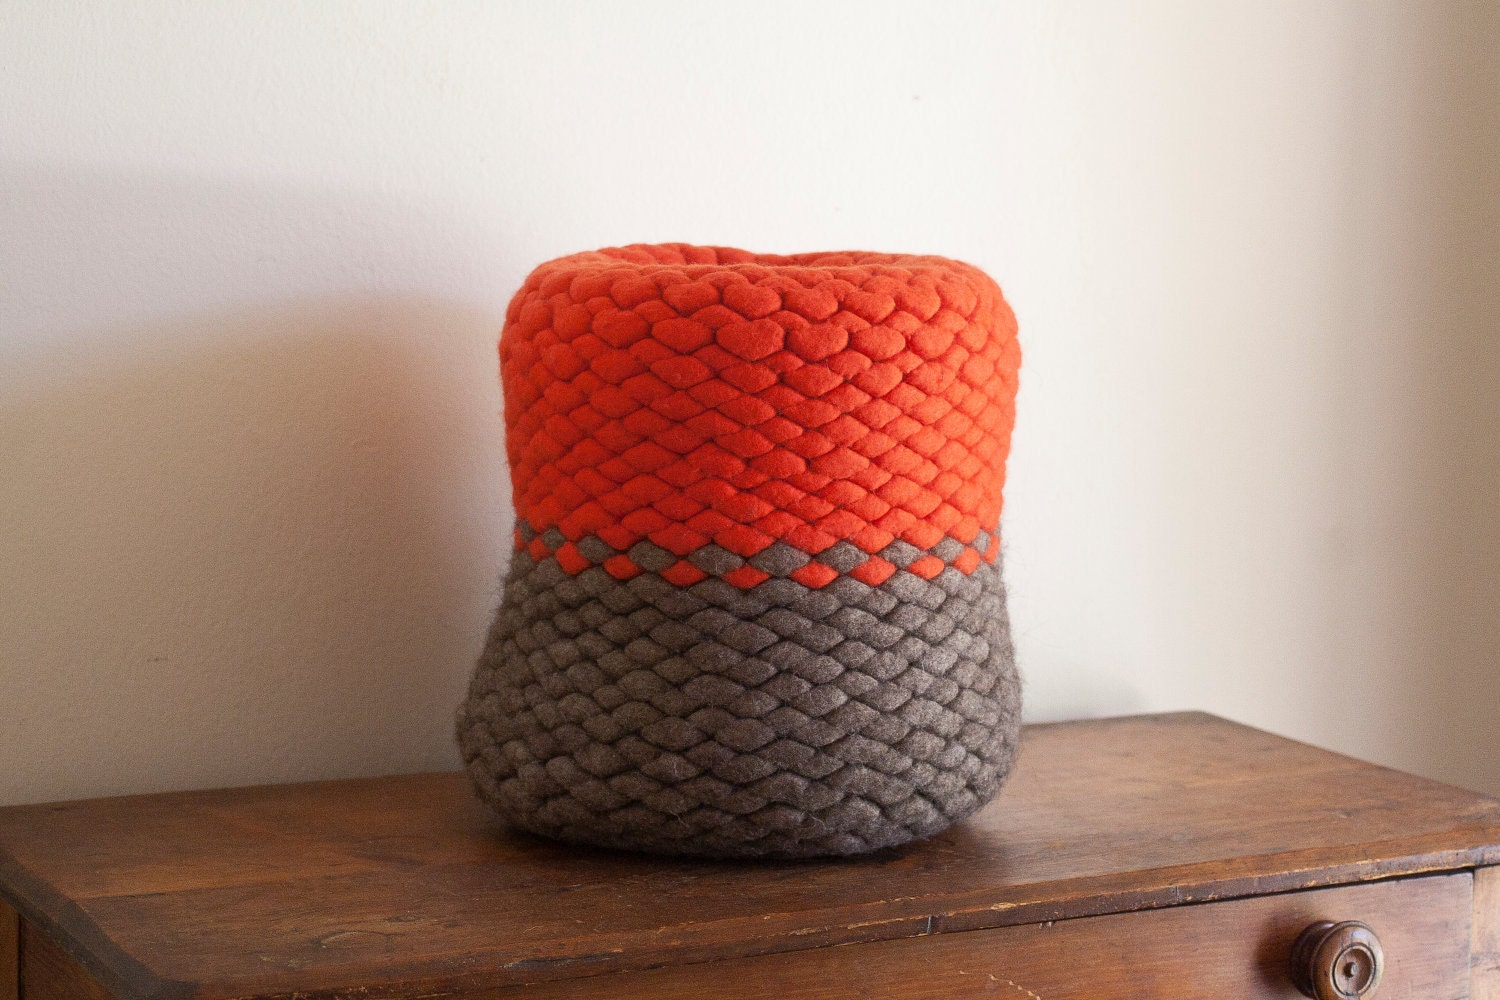 Wool felt knit pod vessel in bright orange and natural gray brown